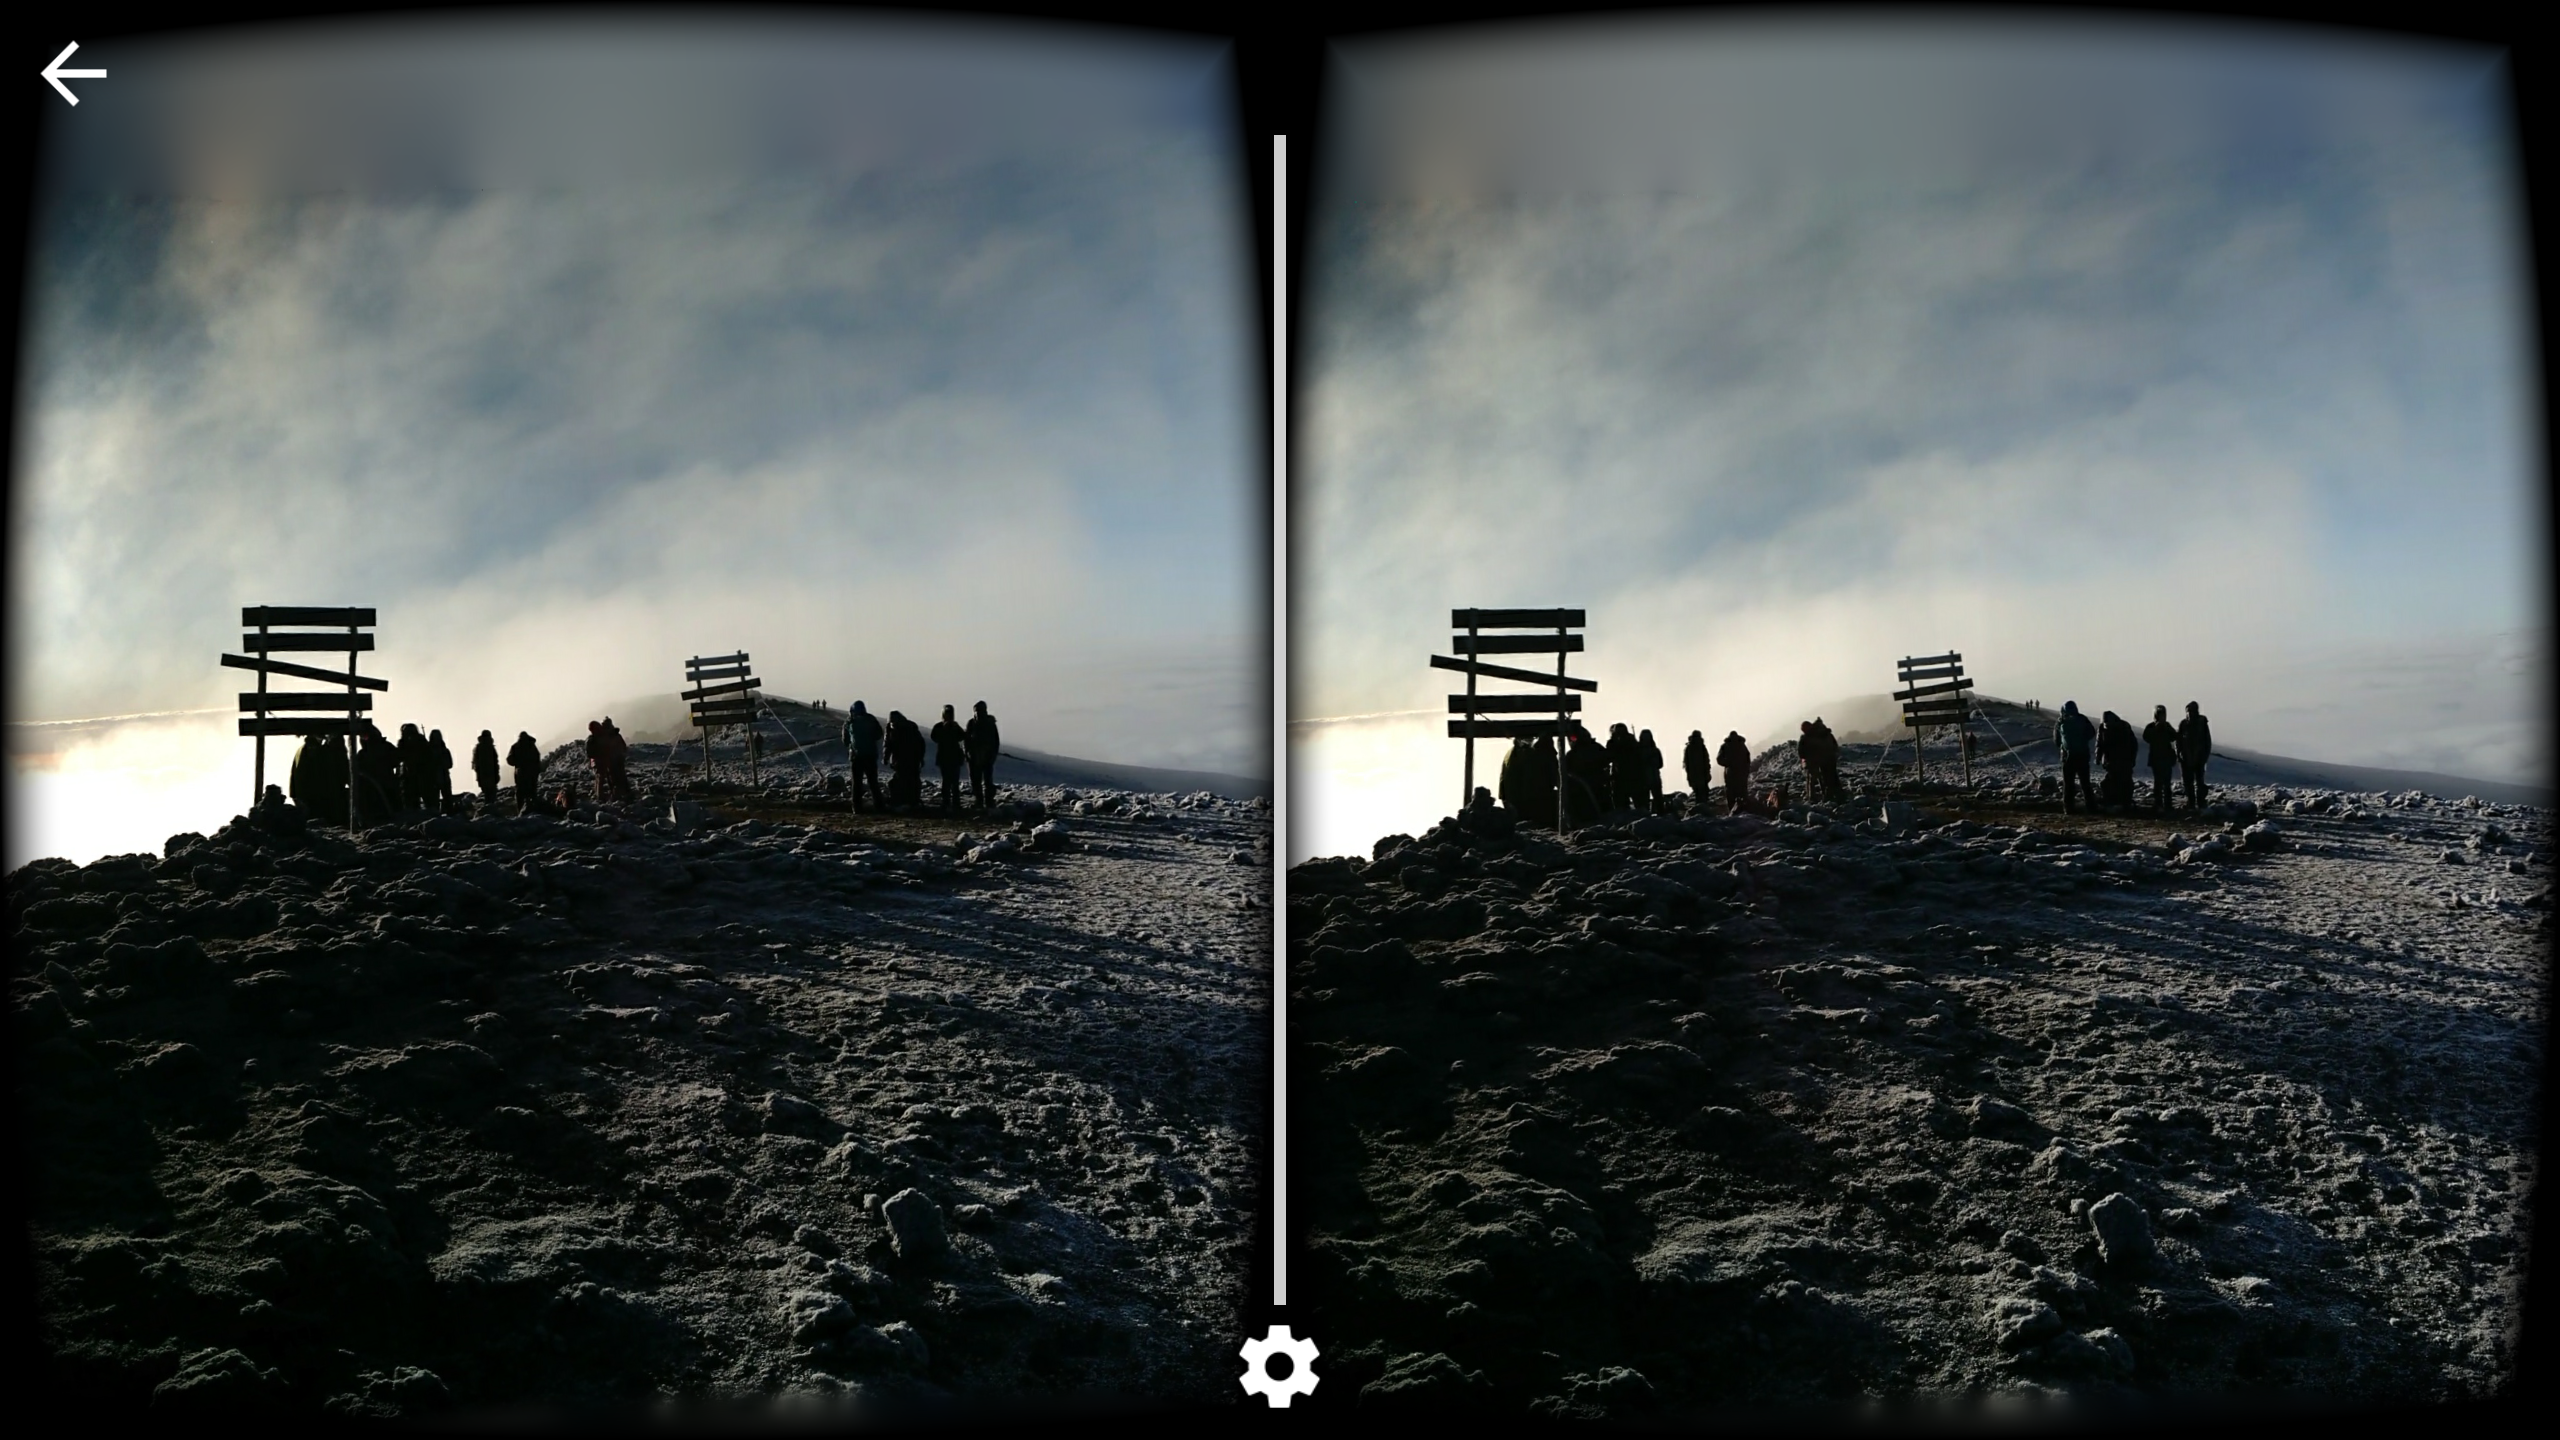 mike podwal a product manager for cardboard tells me that the app is able to transform those panoramic photos into 3d via some computational software and